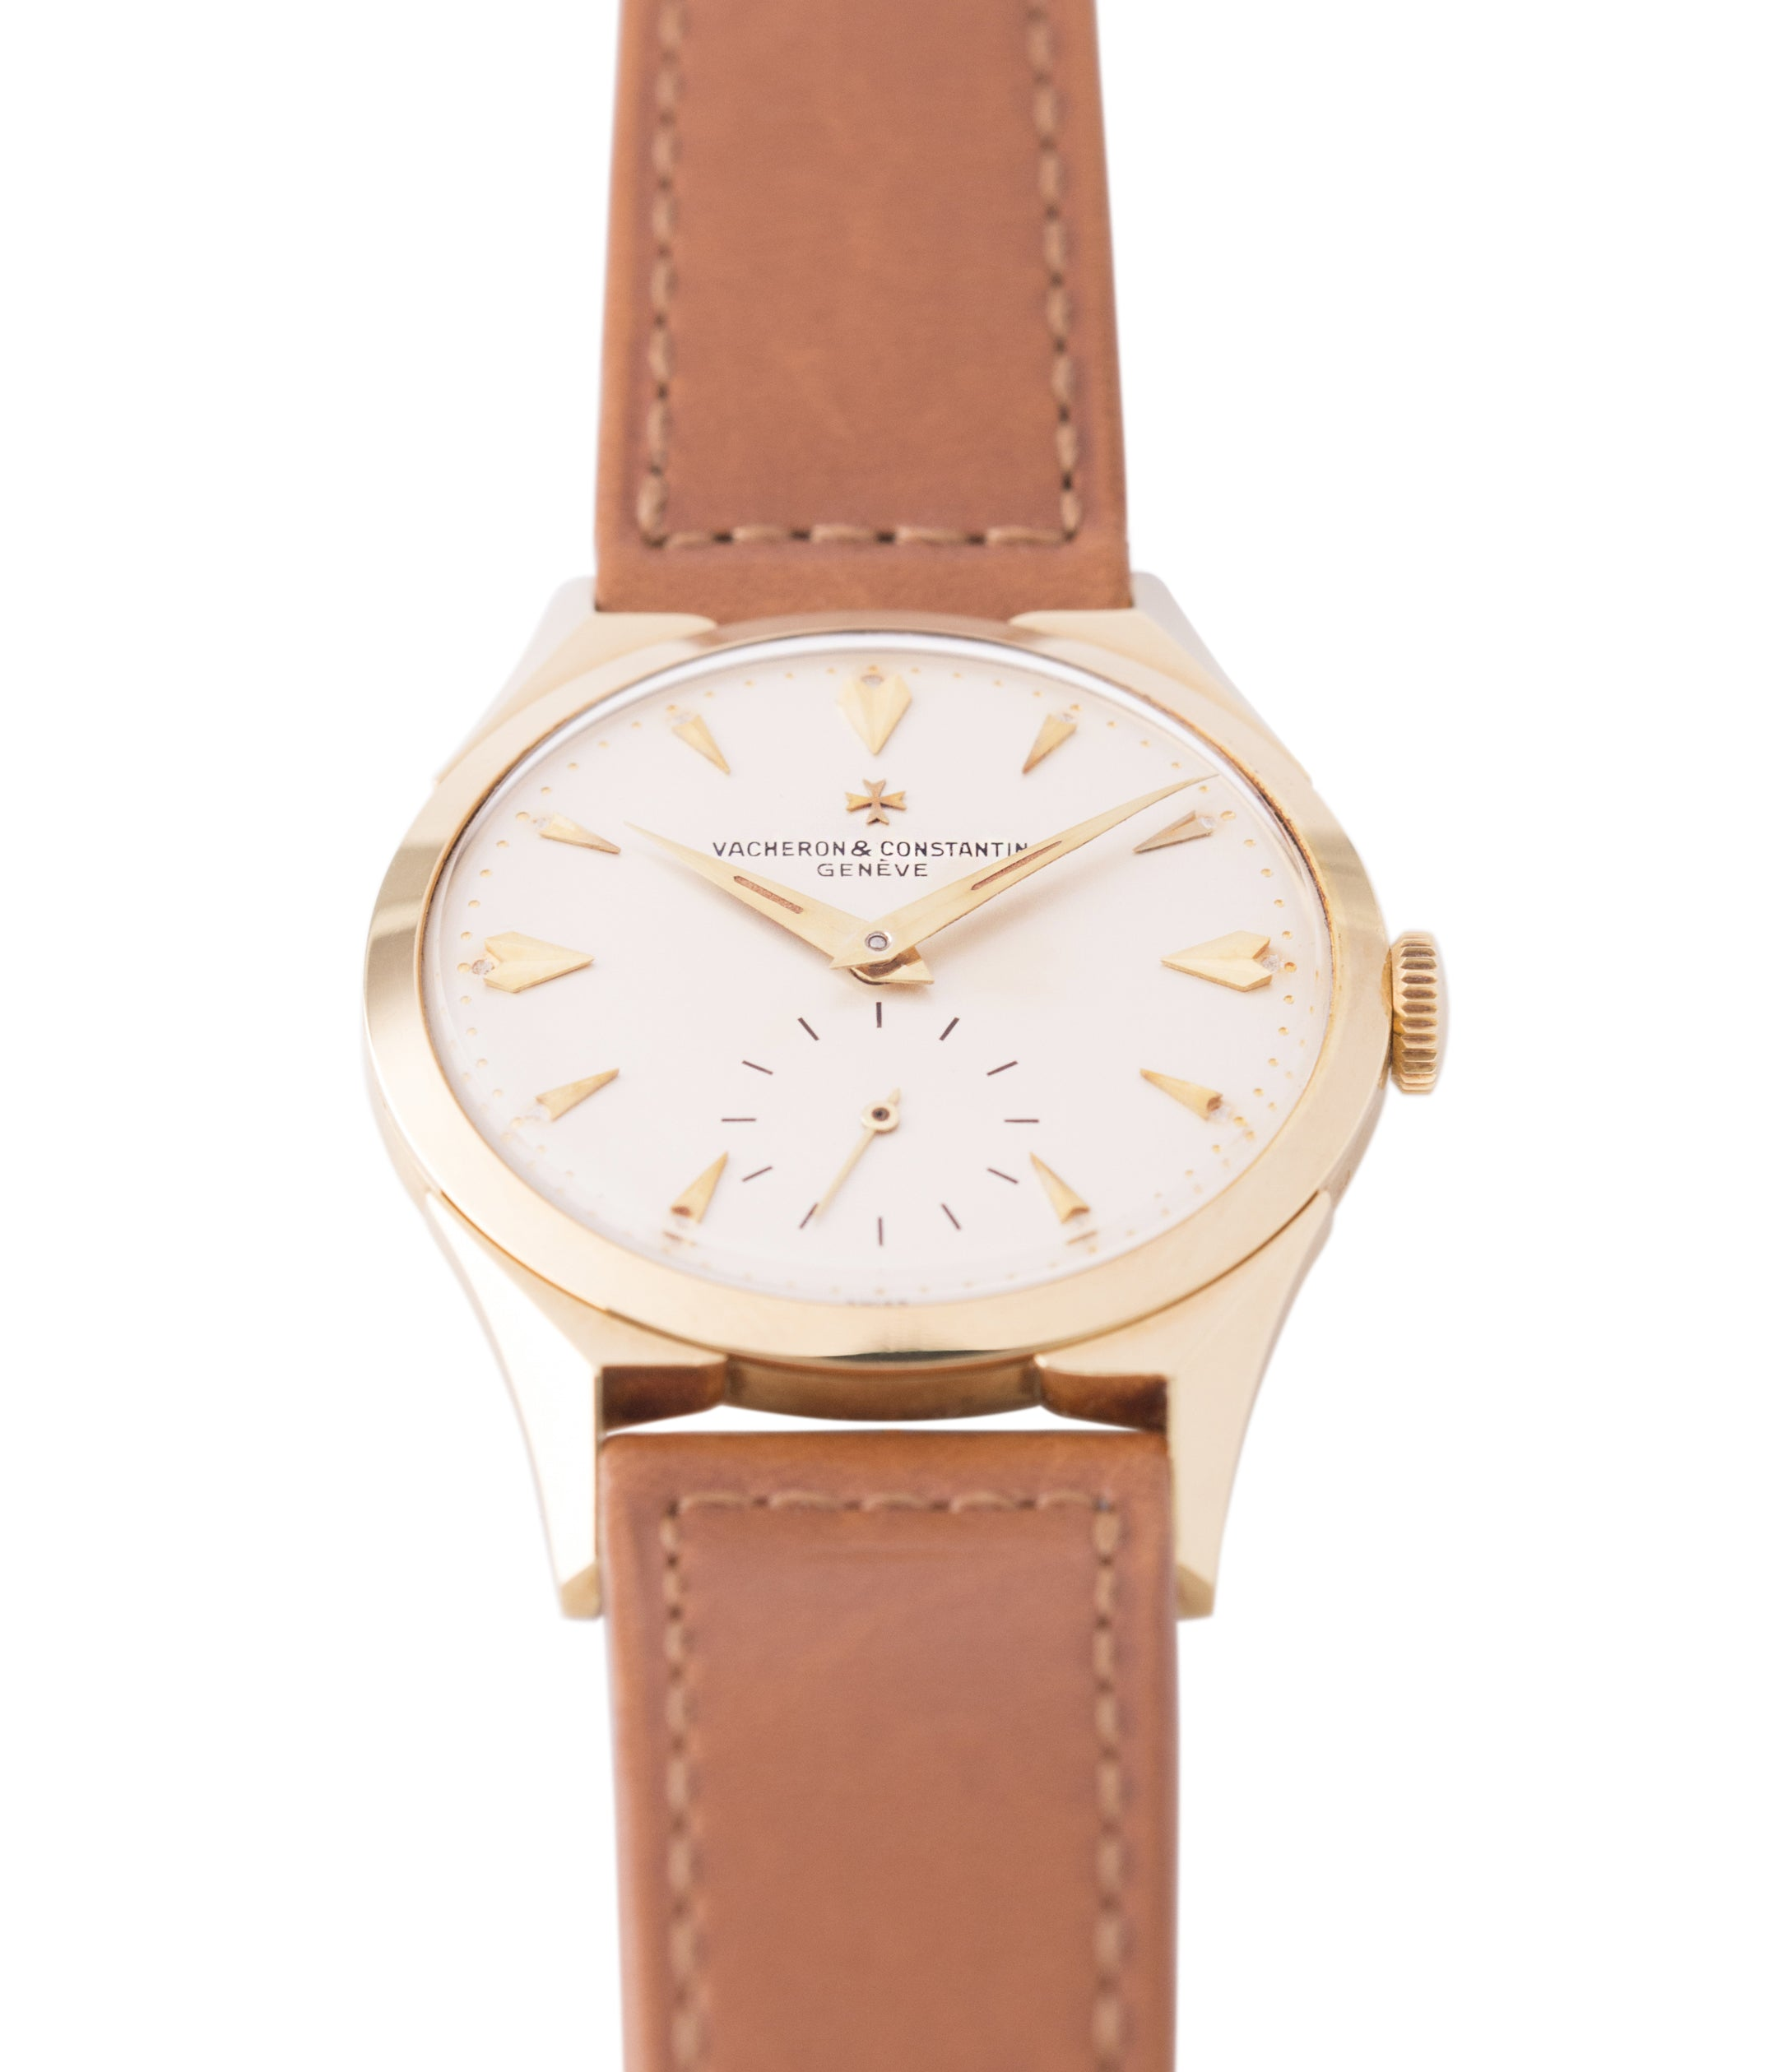 shop Vacheron Constantin 6066 yellow gold time-only dress watch for sale online at A Collected Man London UK specialist of rare watches